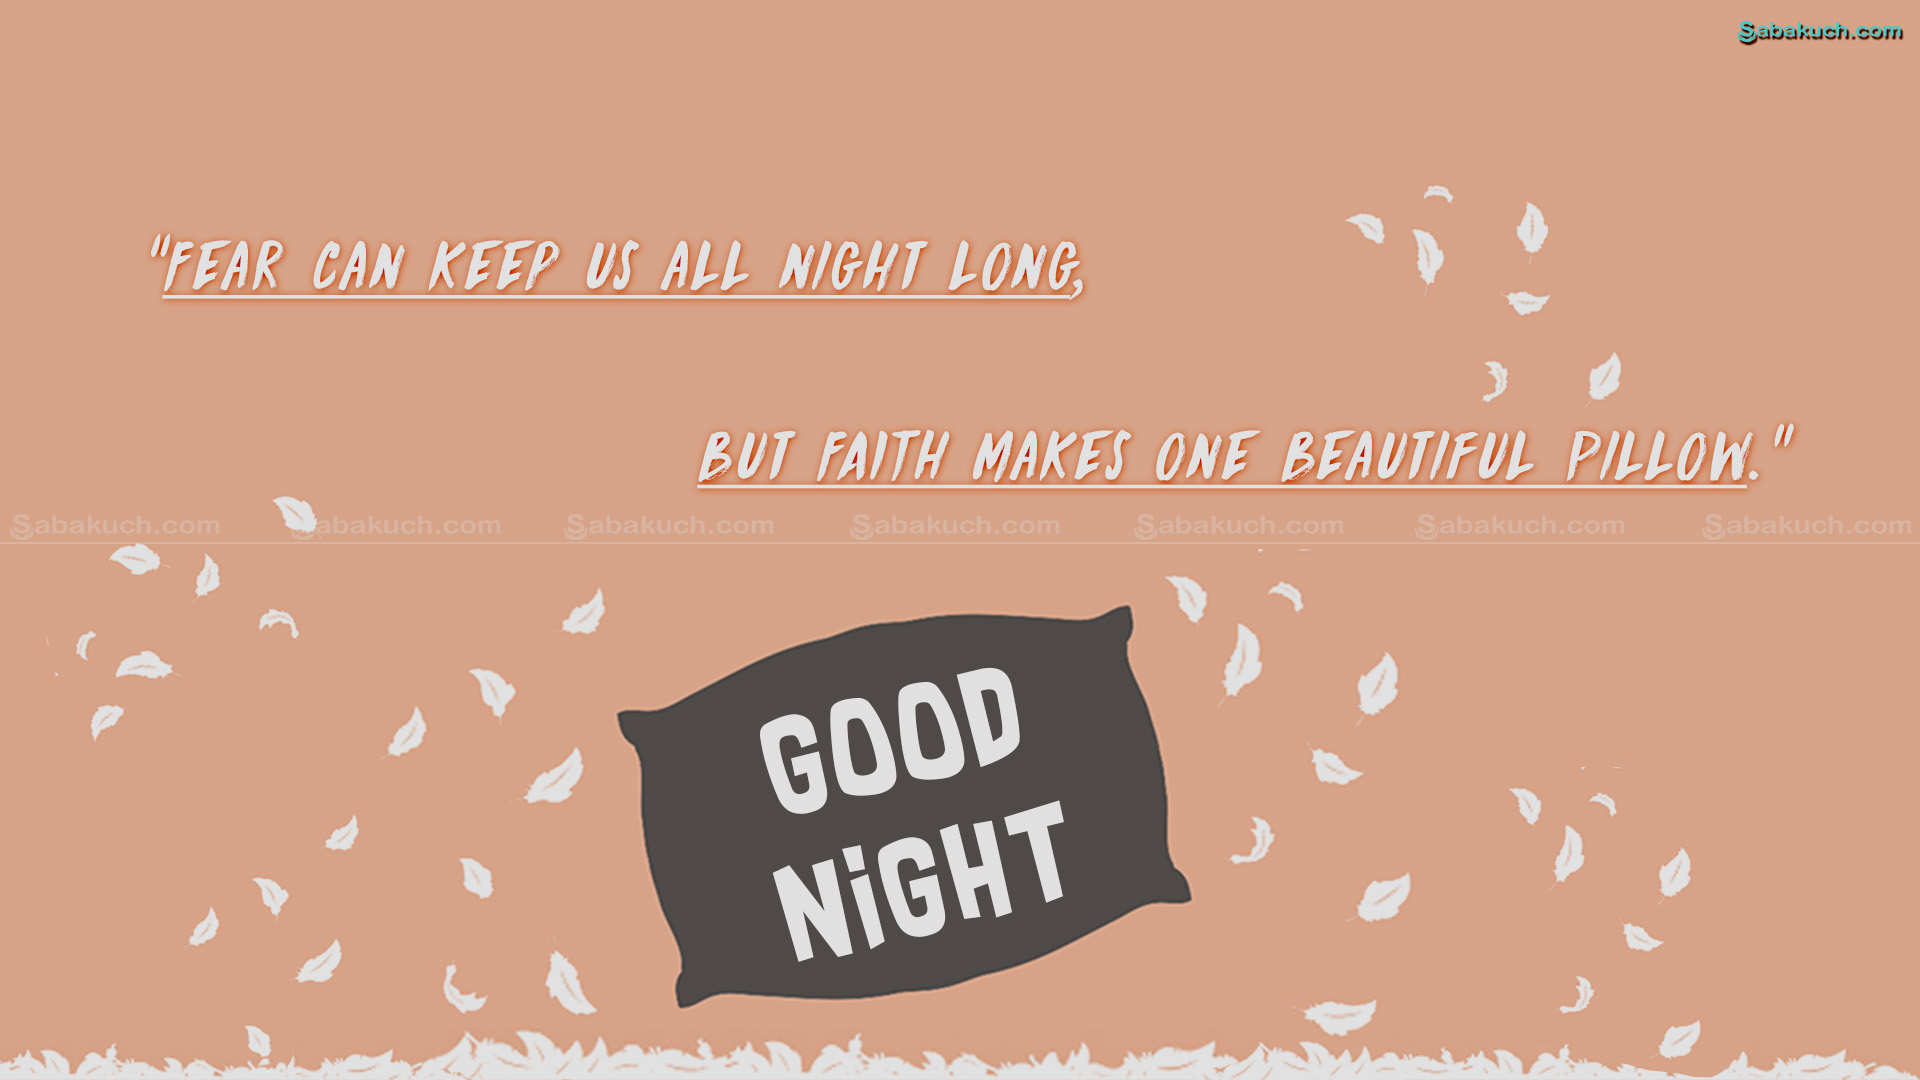 sabakuch-blog-goodnight-wallpaper